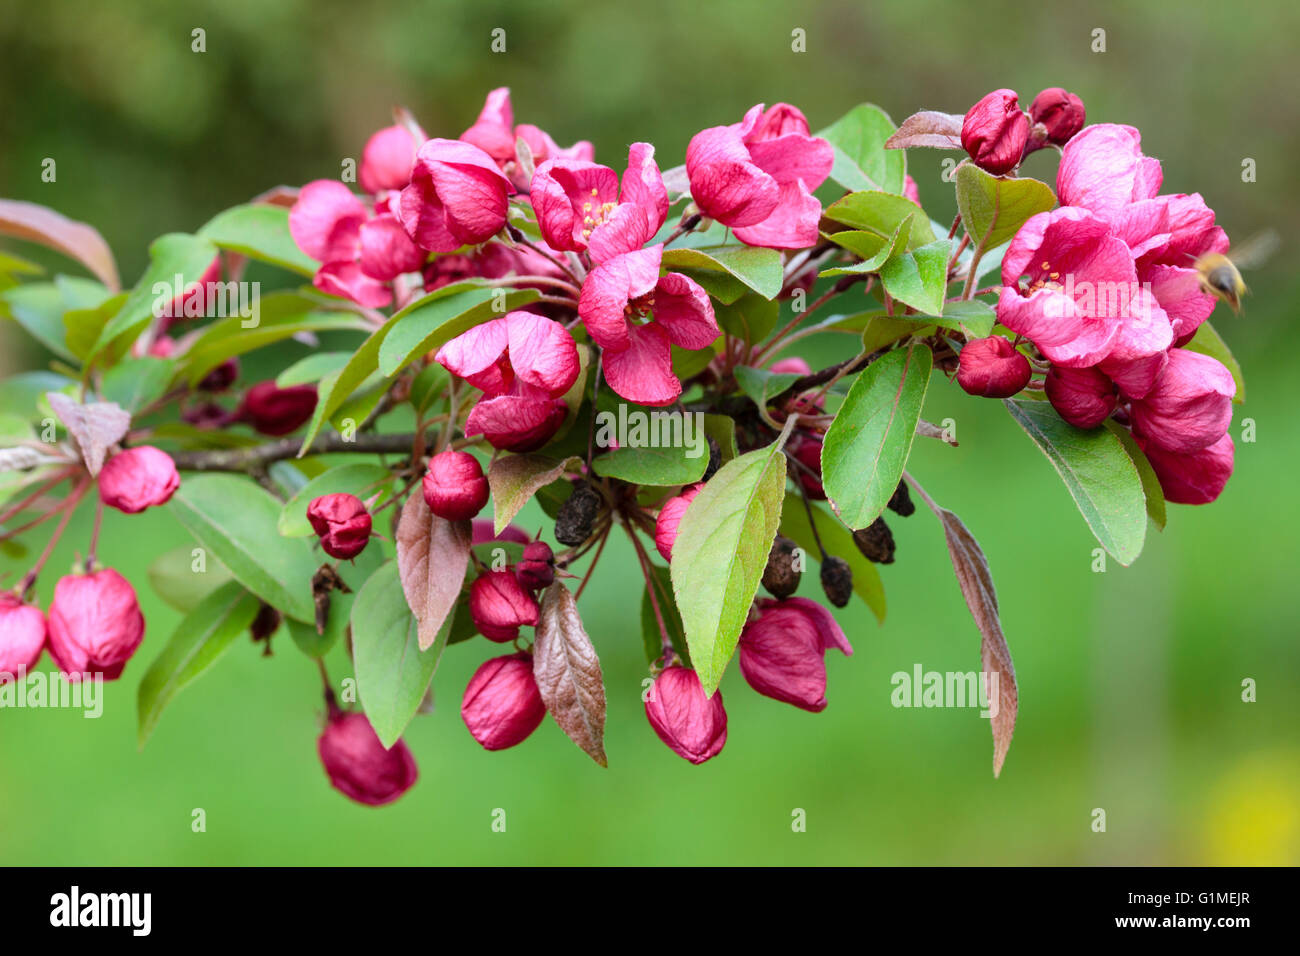 Red Spring Flowers Of The Ornamental Crab Apple Malus Indian Magic